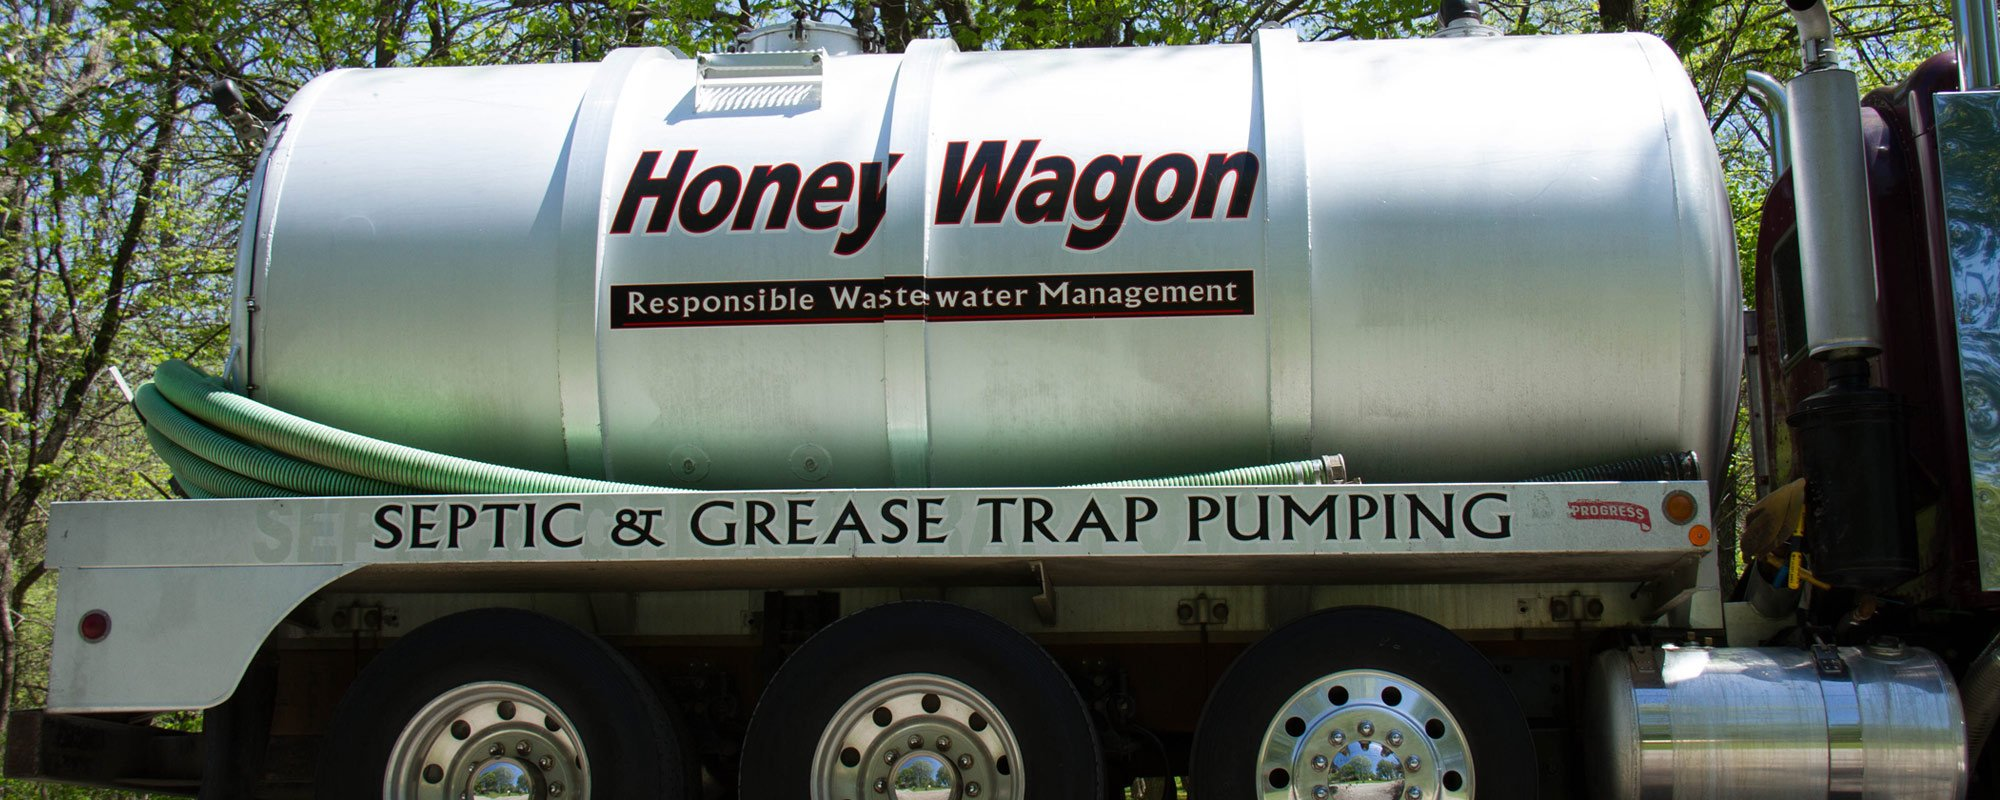 Honey Wagon